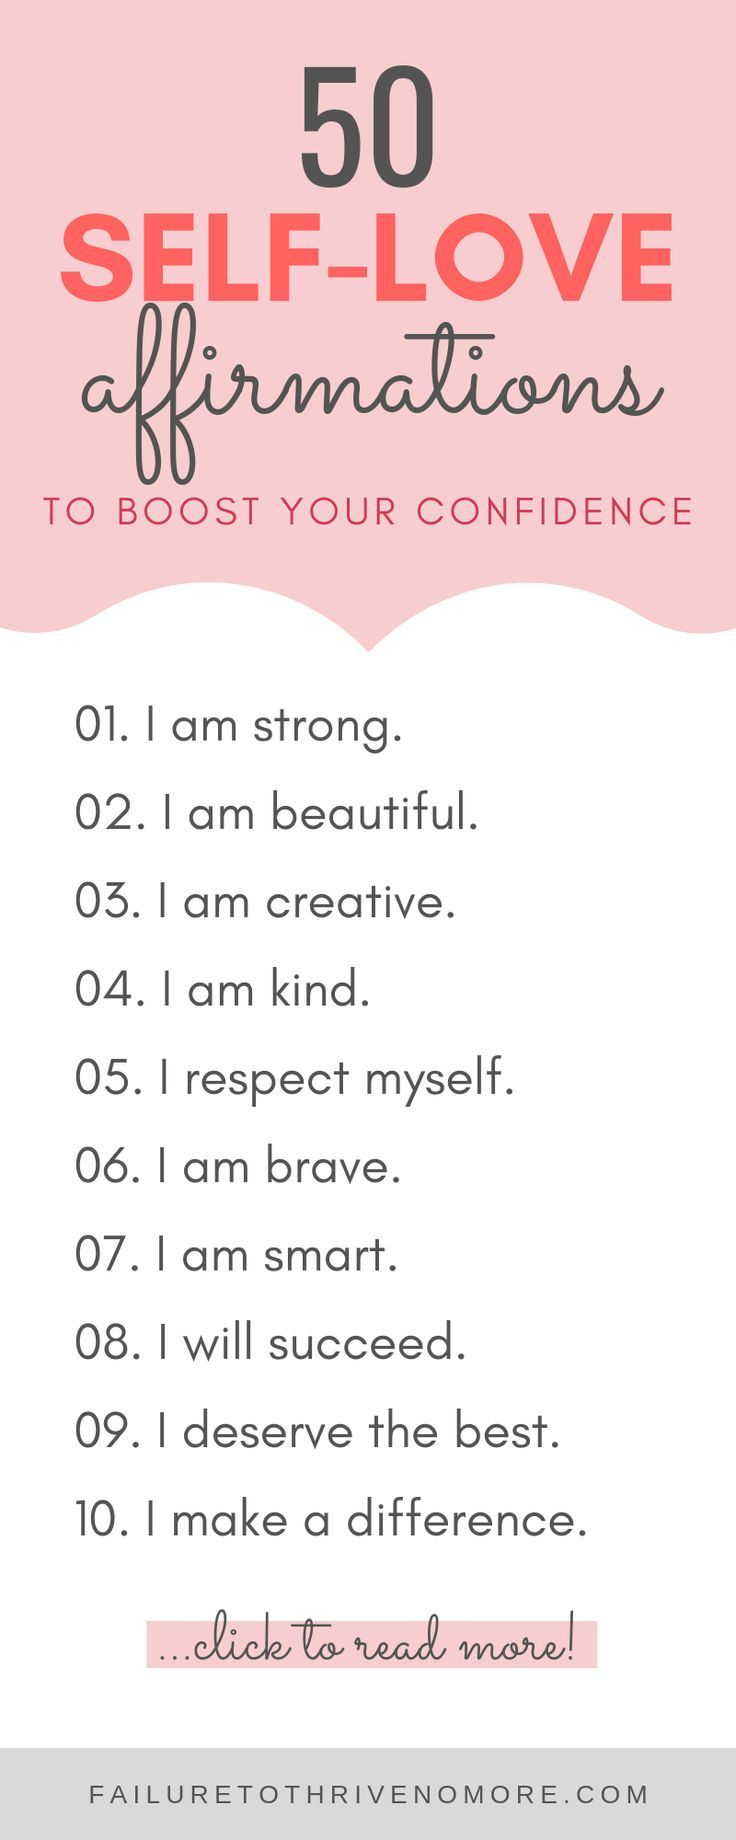 Affirmations To Boost Your Confidence